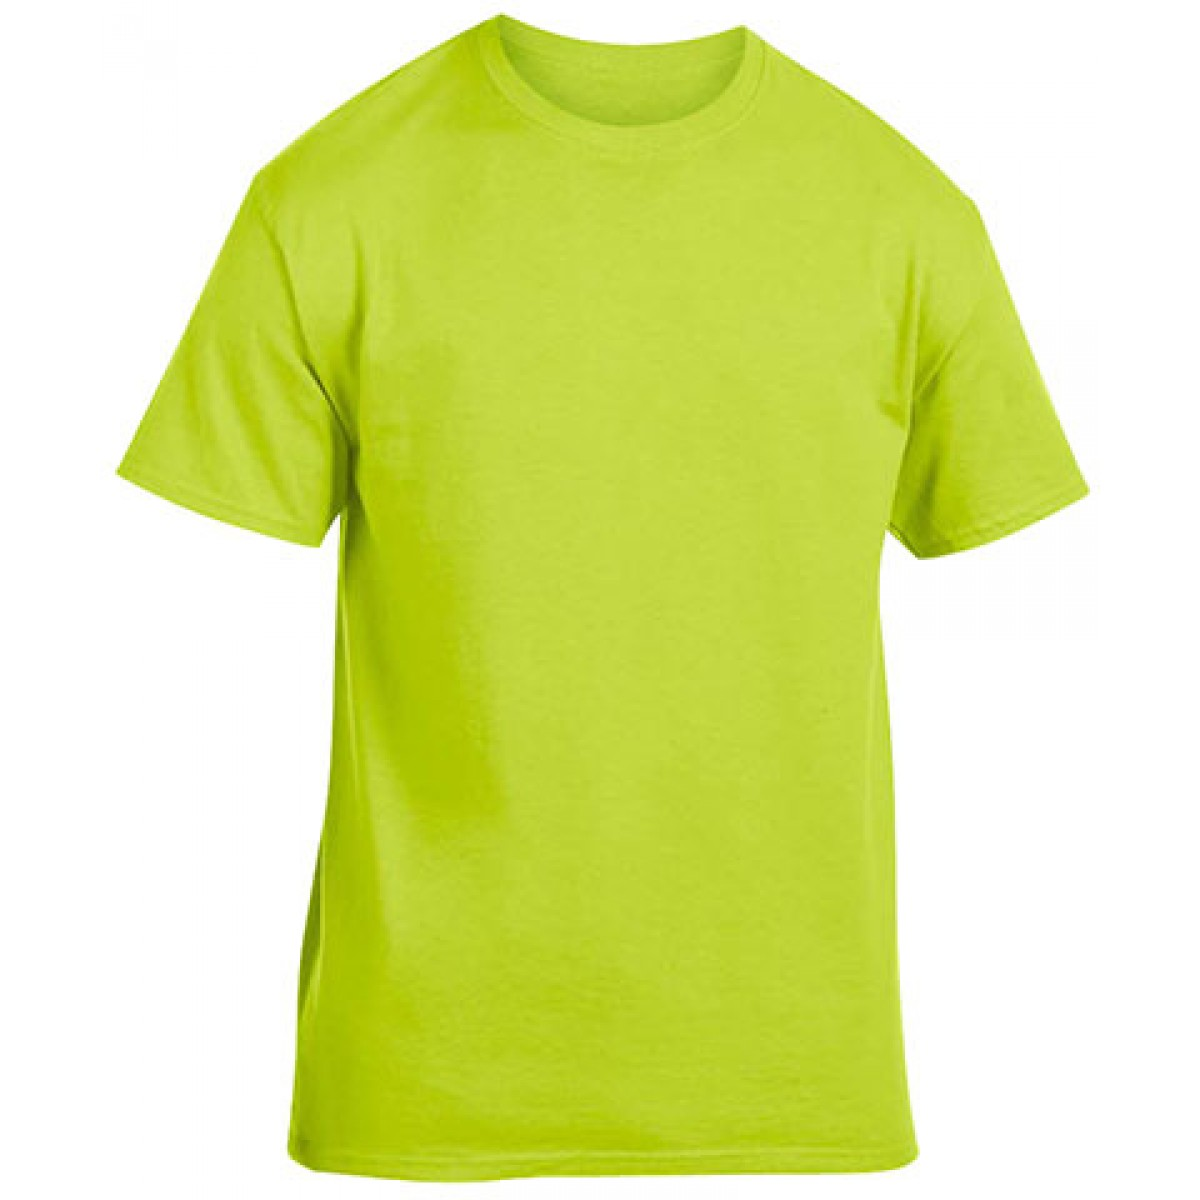 Cotton Short Sleeve T-Shirt-Safety Green-S